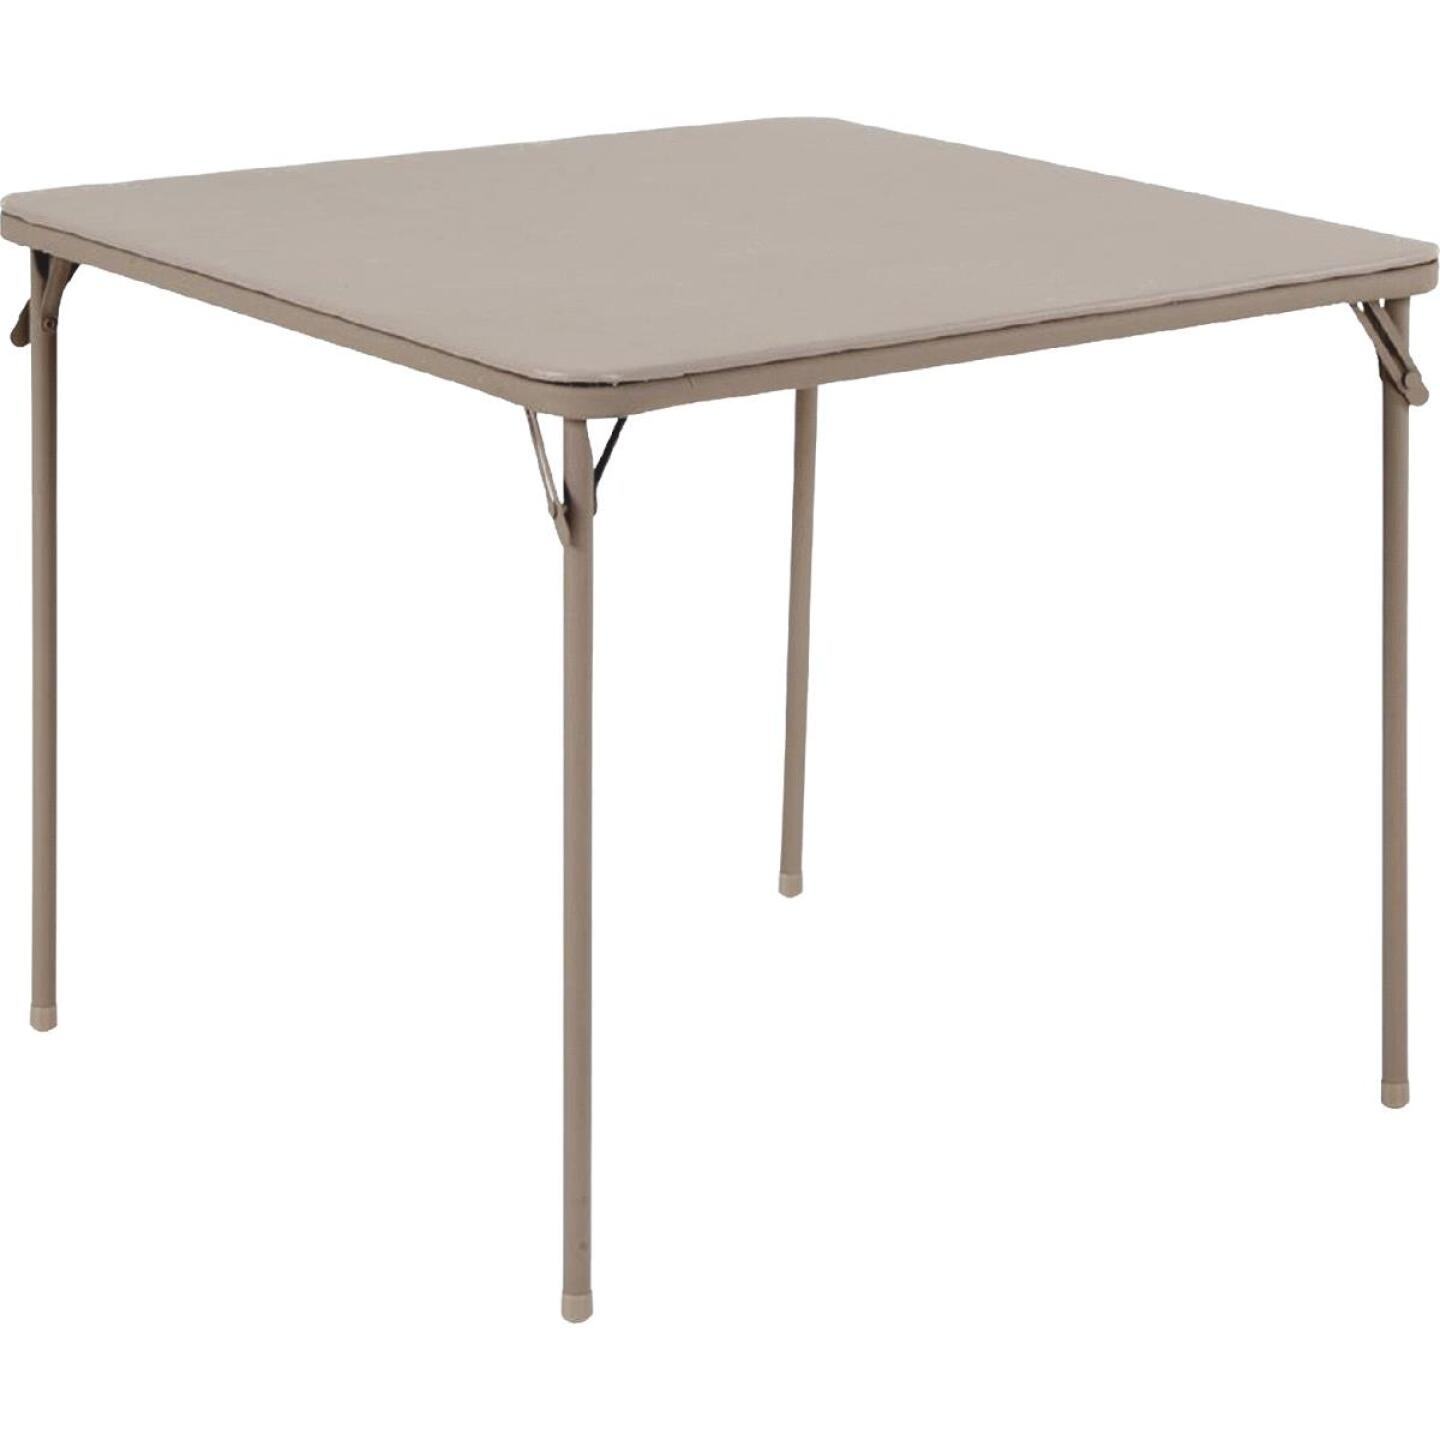 COSCO 34 In. x 34 In. Folding Table, Sand Image 1